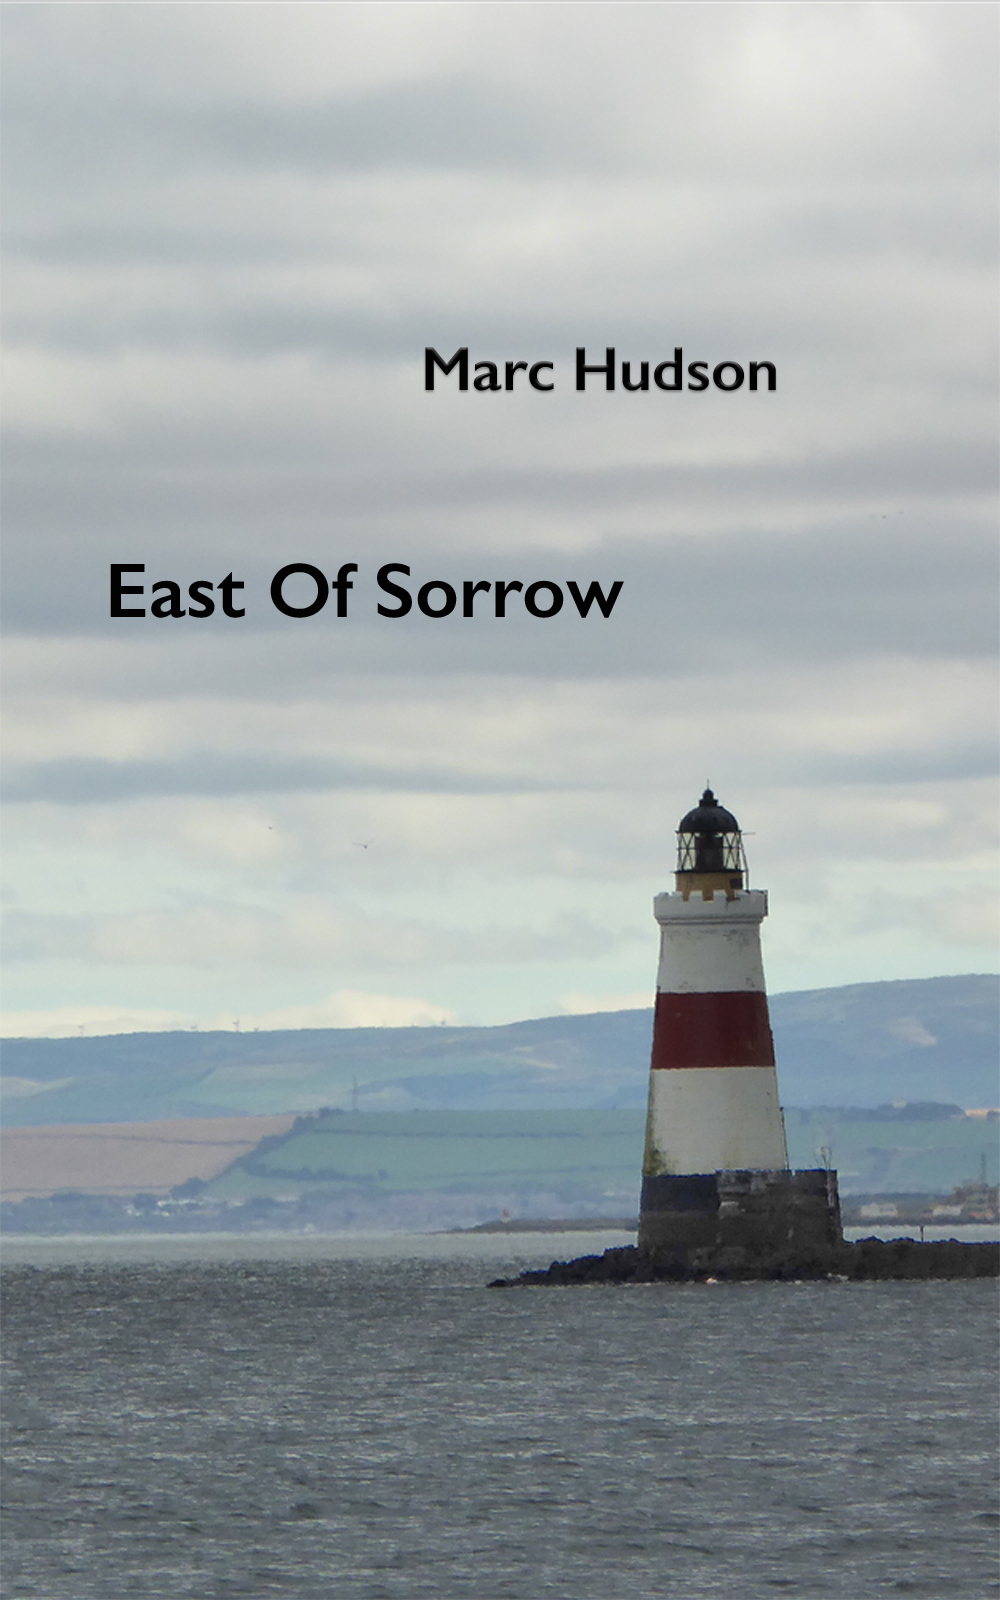 East of Sorrow